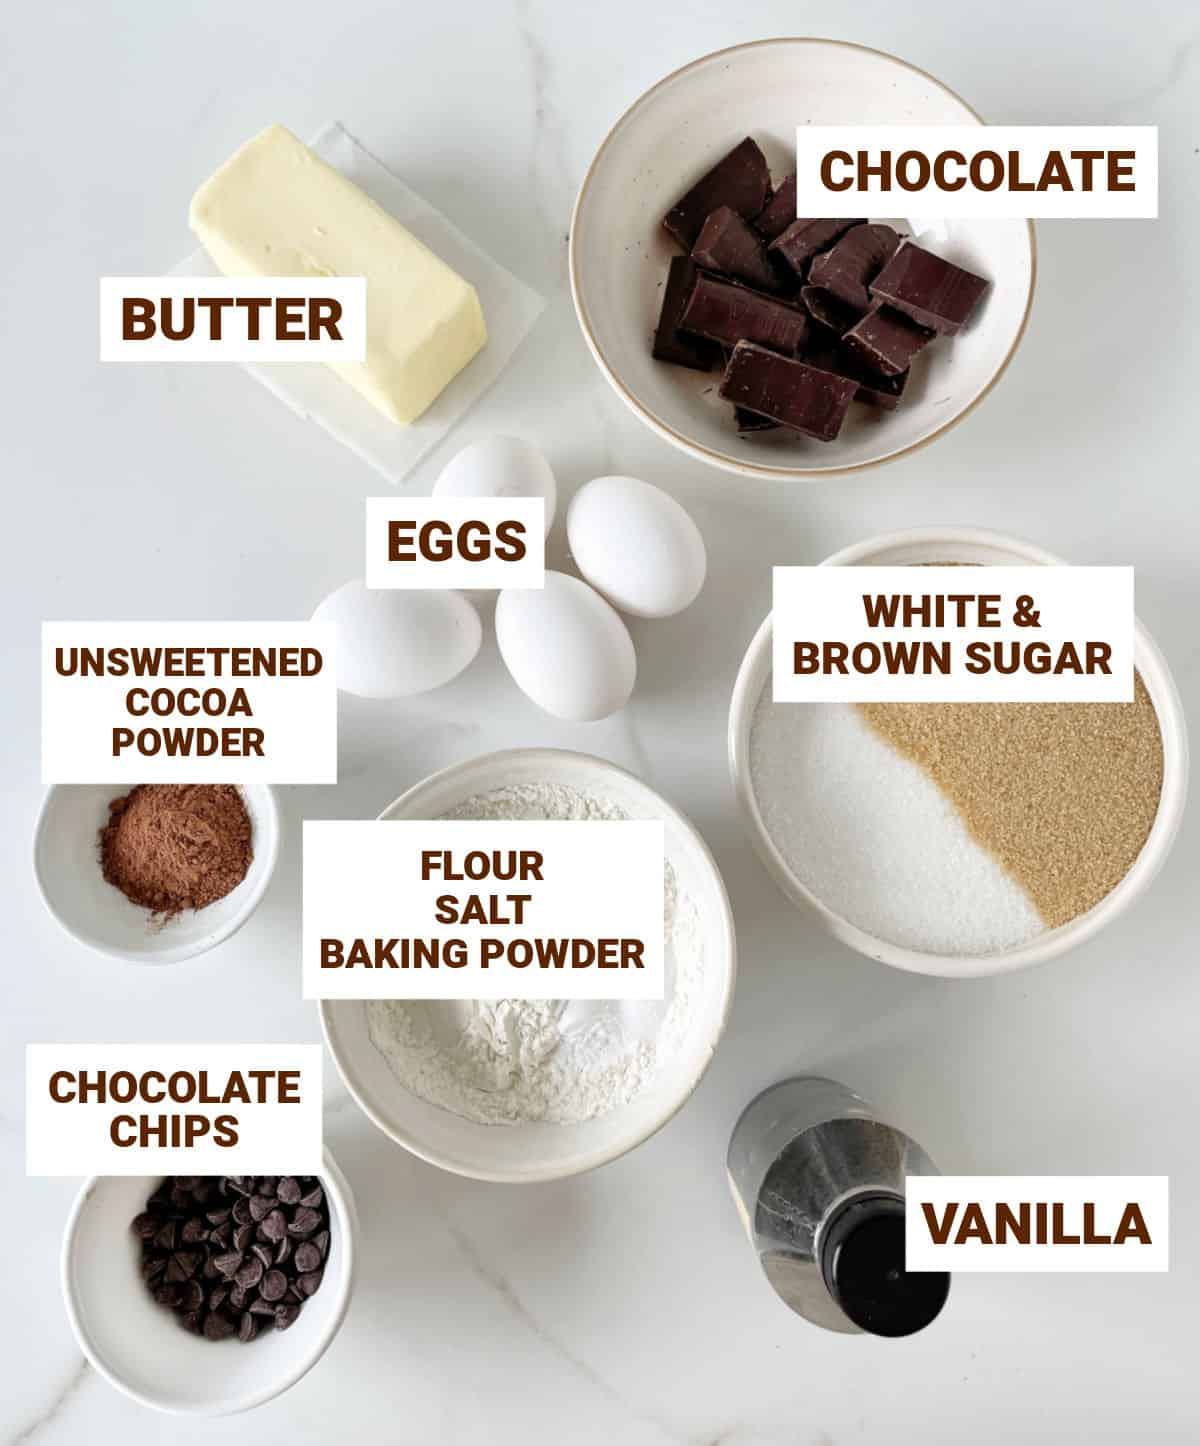 White marble with bowls containing ingredients for chocolate muffins including butter, vanilla, sugar, cocoa powder, chips, eggs